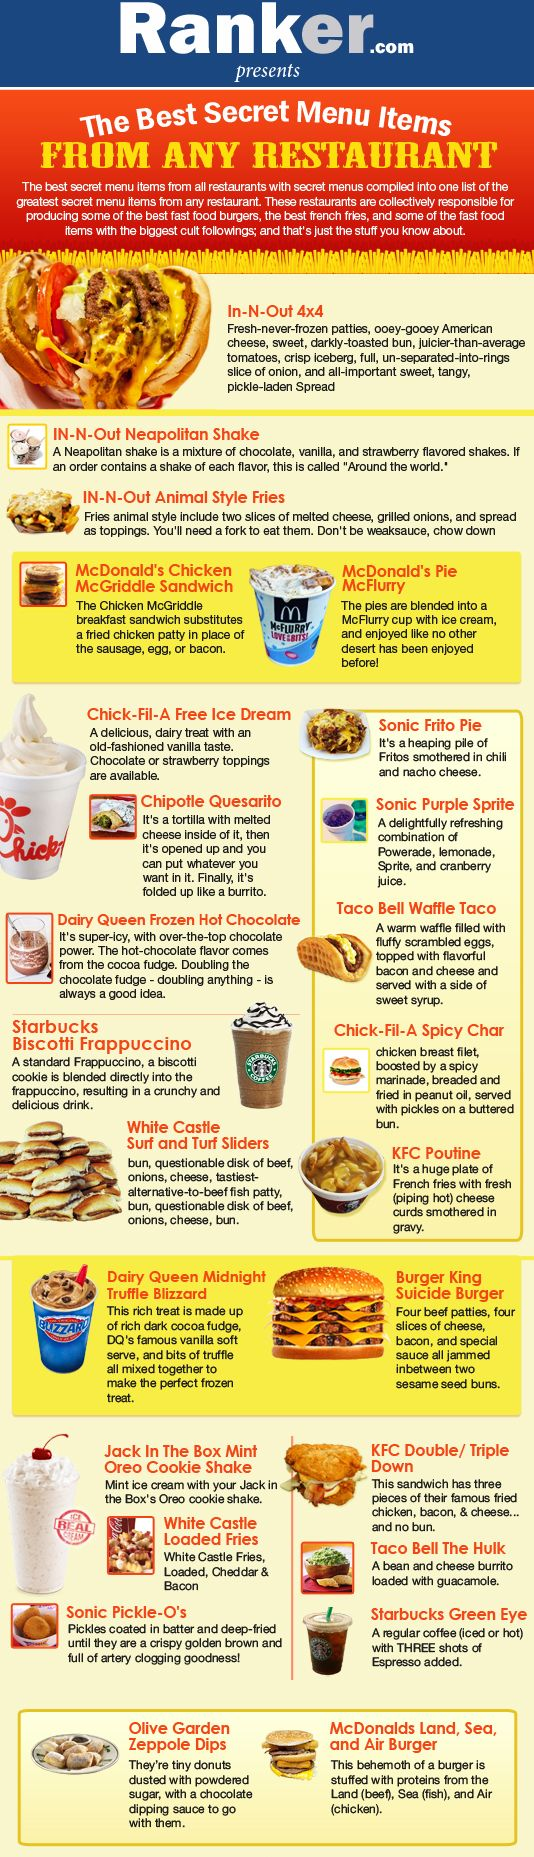 The Best Secret Menu Items From Any Restaurant (Infographic) | The Ranker.com Blog